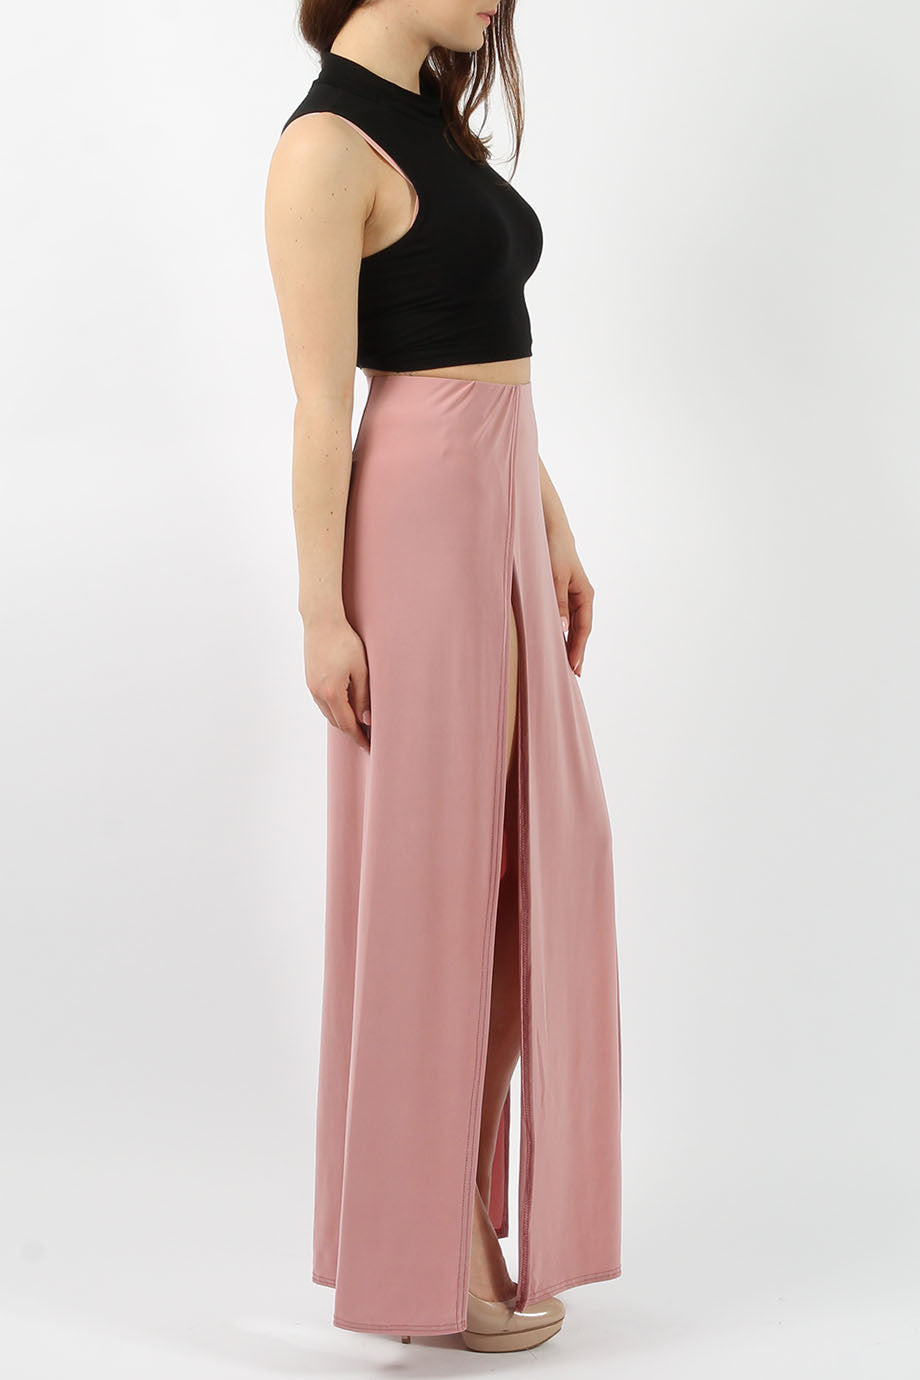 TINA DOUBLE SPLIT SLINKY MAXI SKIRT PINK